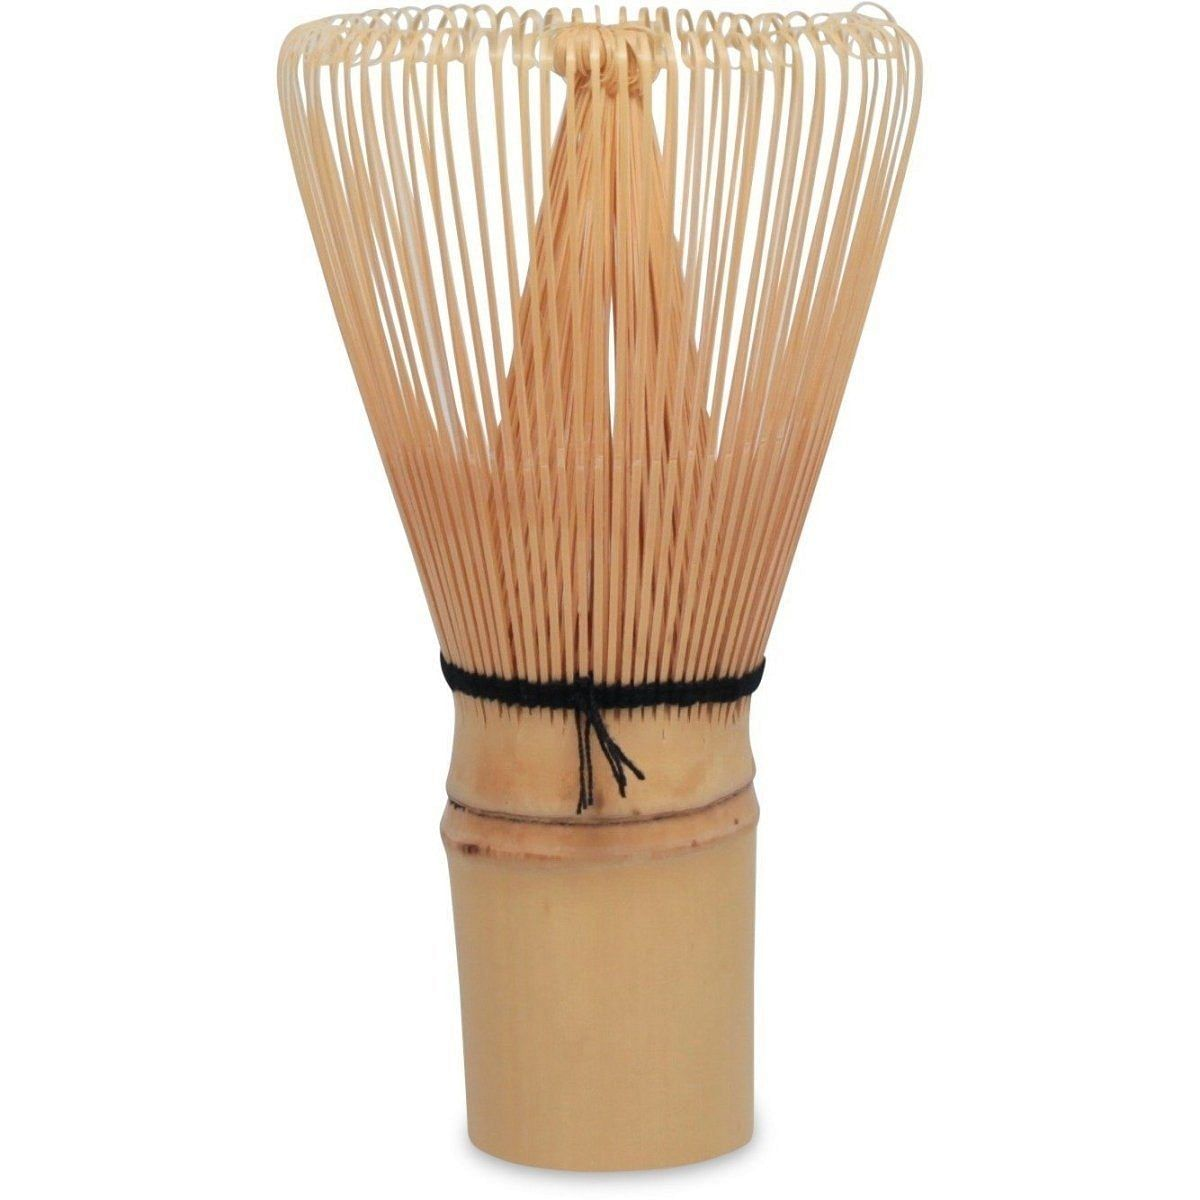 Bamboo Matcha Whisk (Chasen) - 3 Leaf Tea